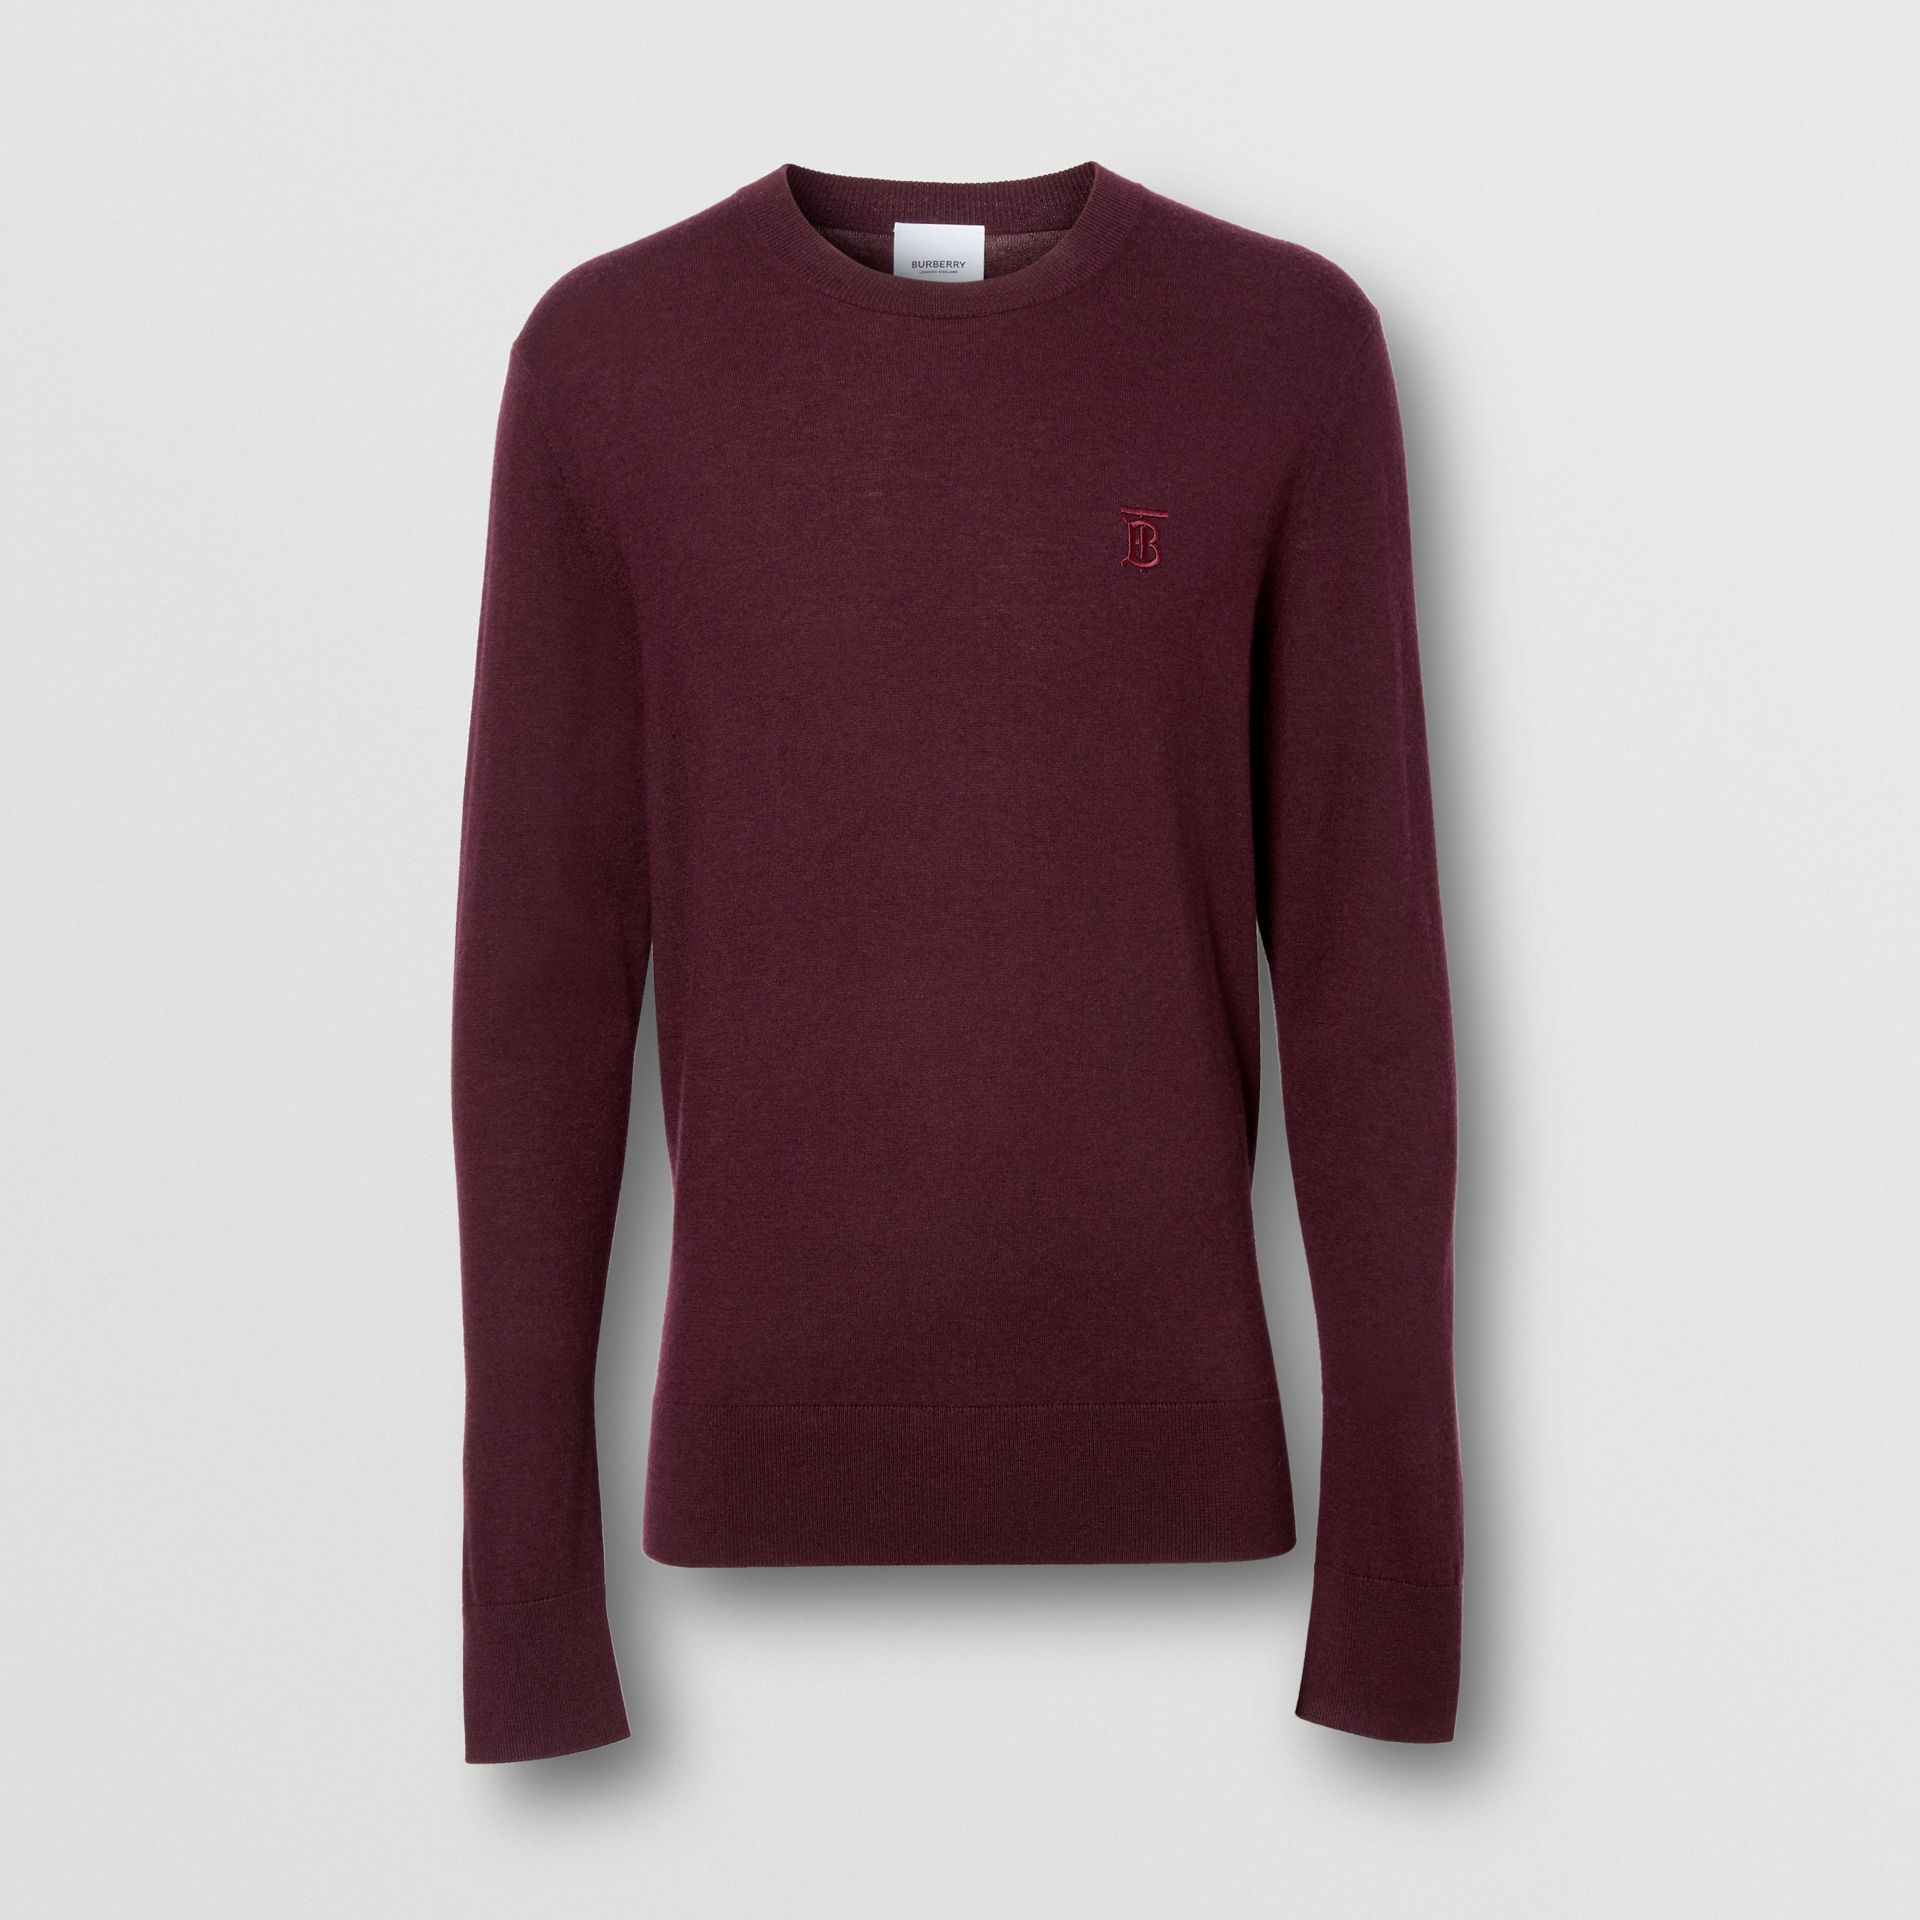 Monogram Motif Cashmere Sweater in Burgundy - Men | Burberry - gallery image 3